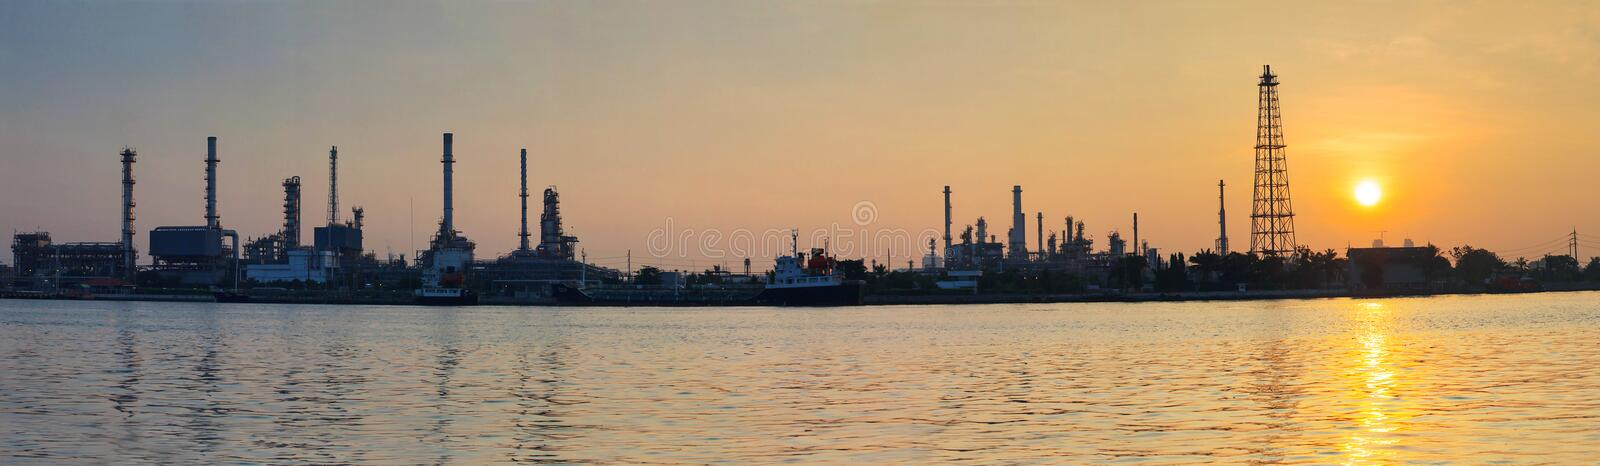 Beautiful sun rising scene with oil ,gas refinery industry estate and marine tanker logistic port stock photos